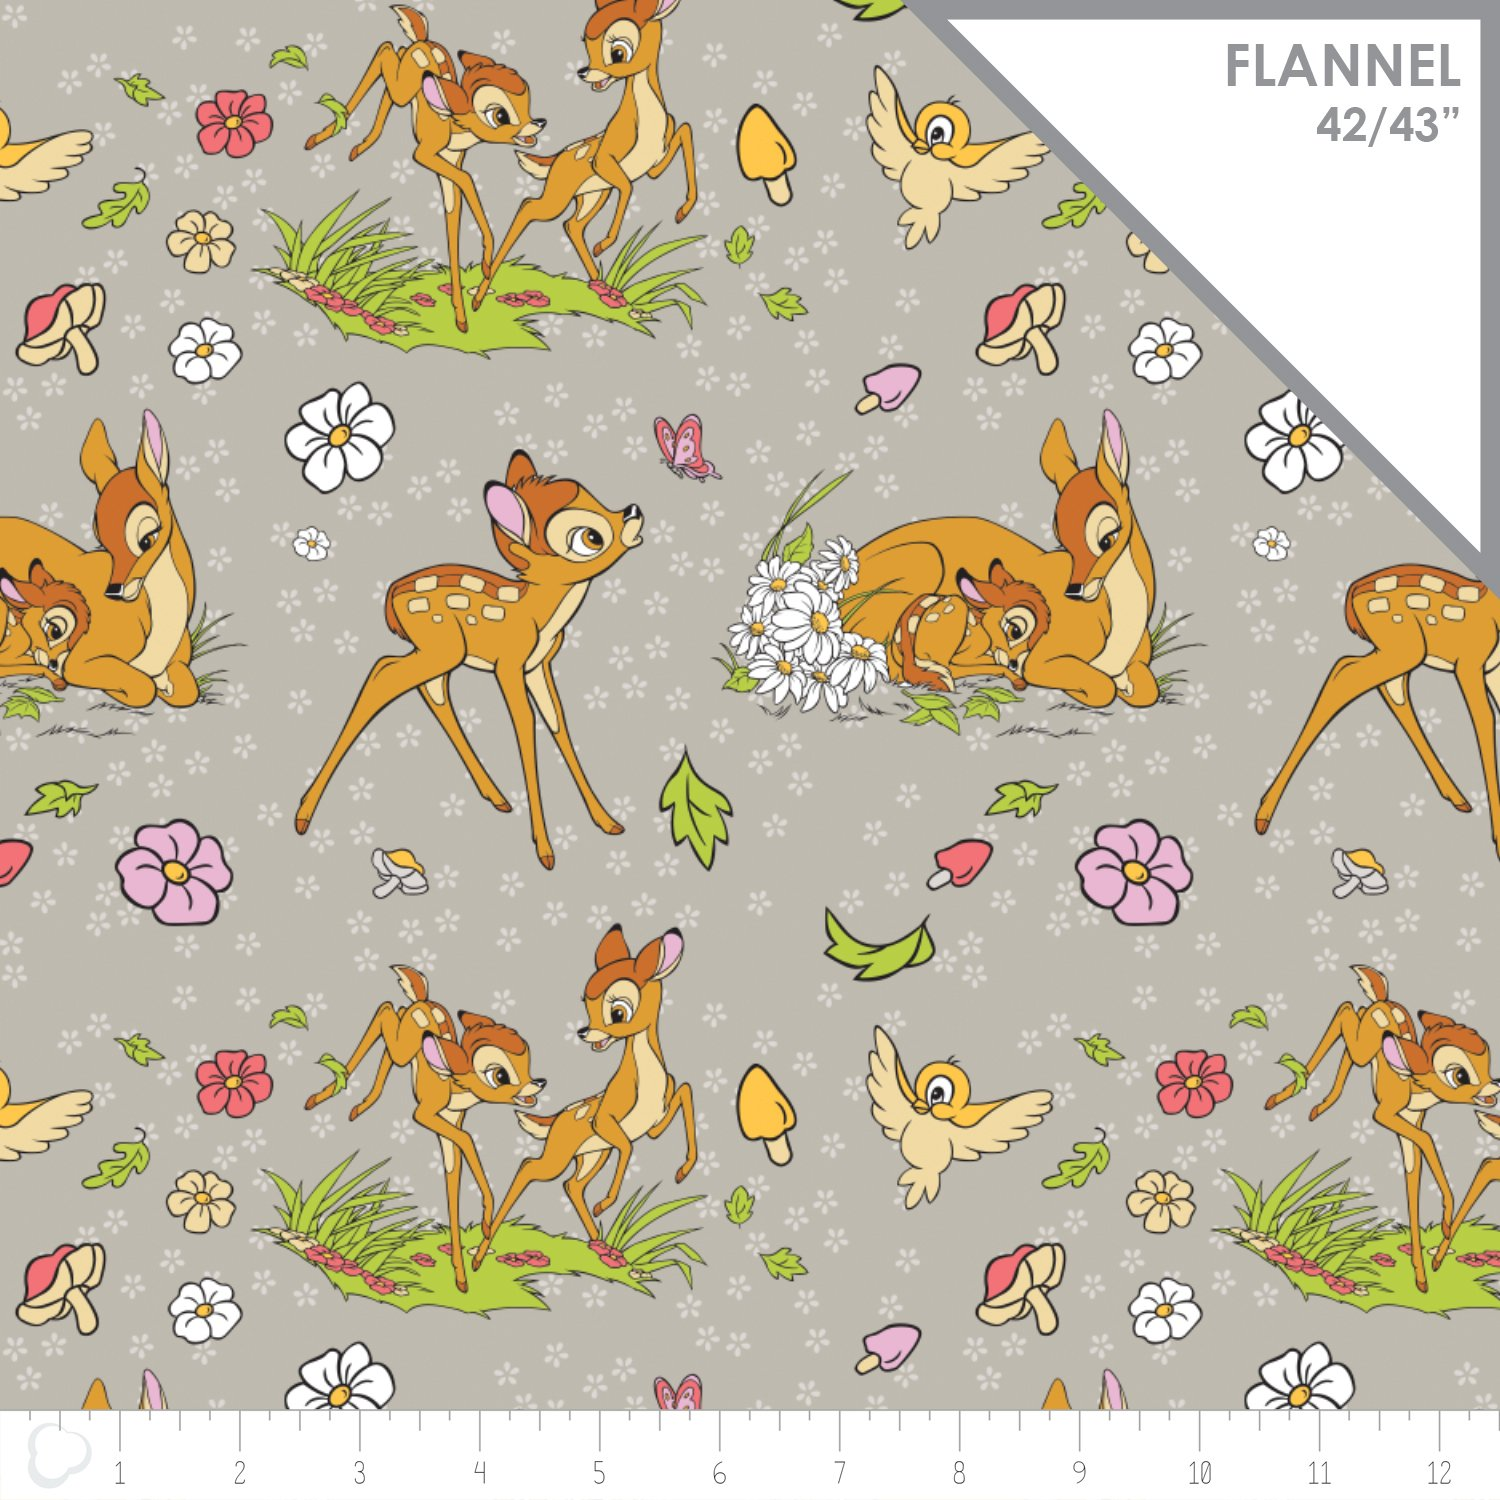 Bambi flannel